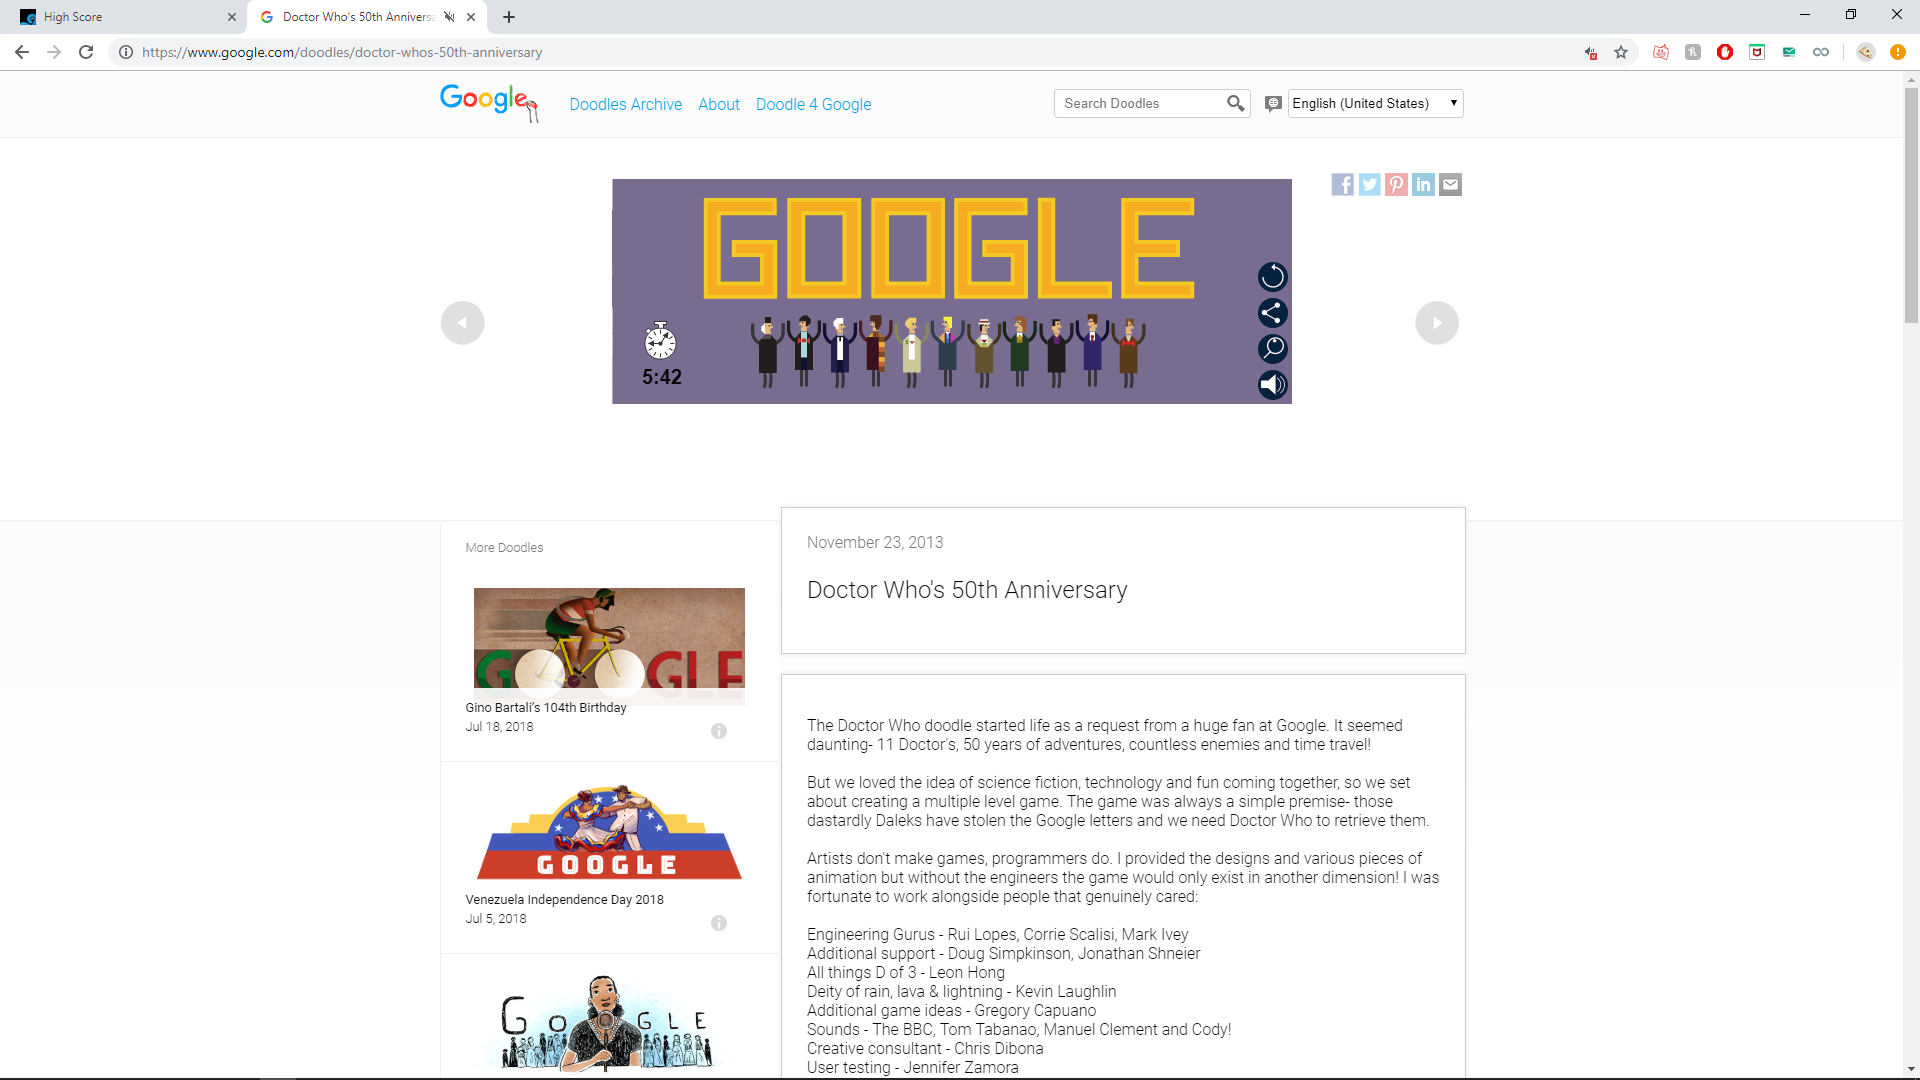 Google Doctor Who Doodle time of 0:05:42